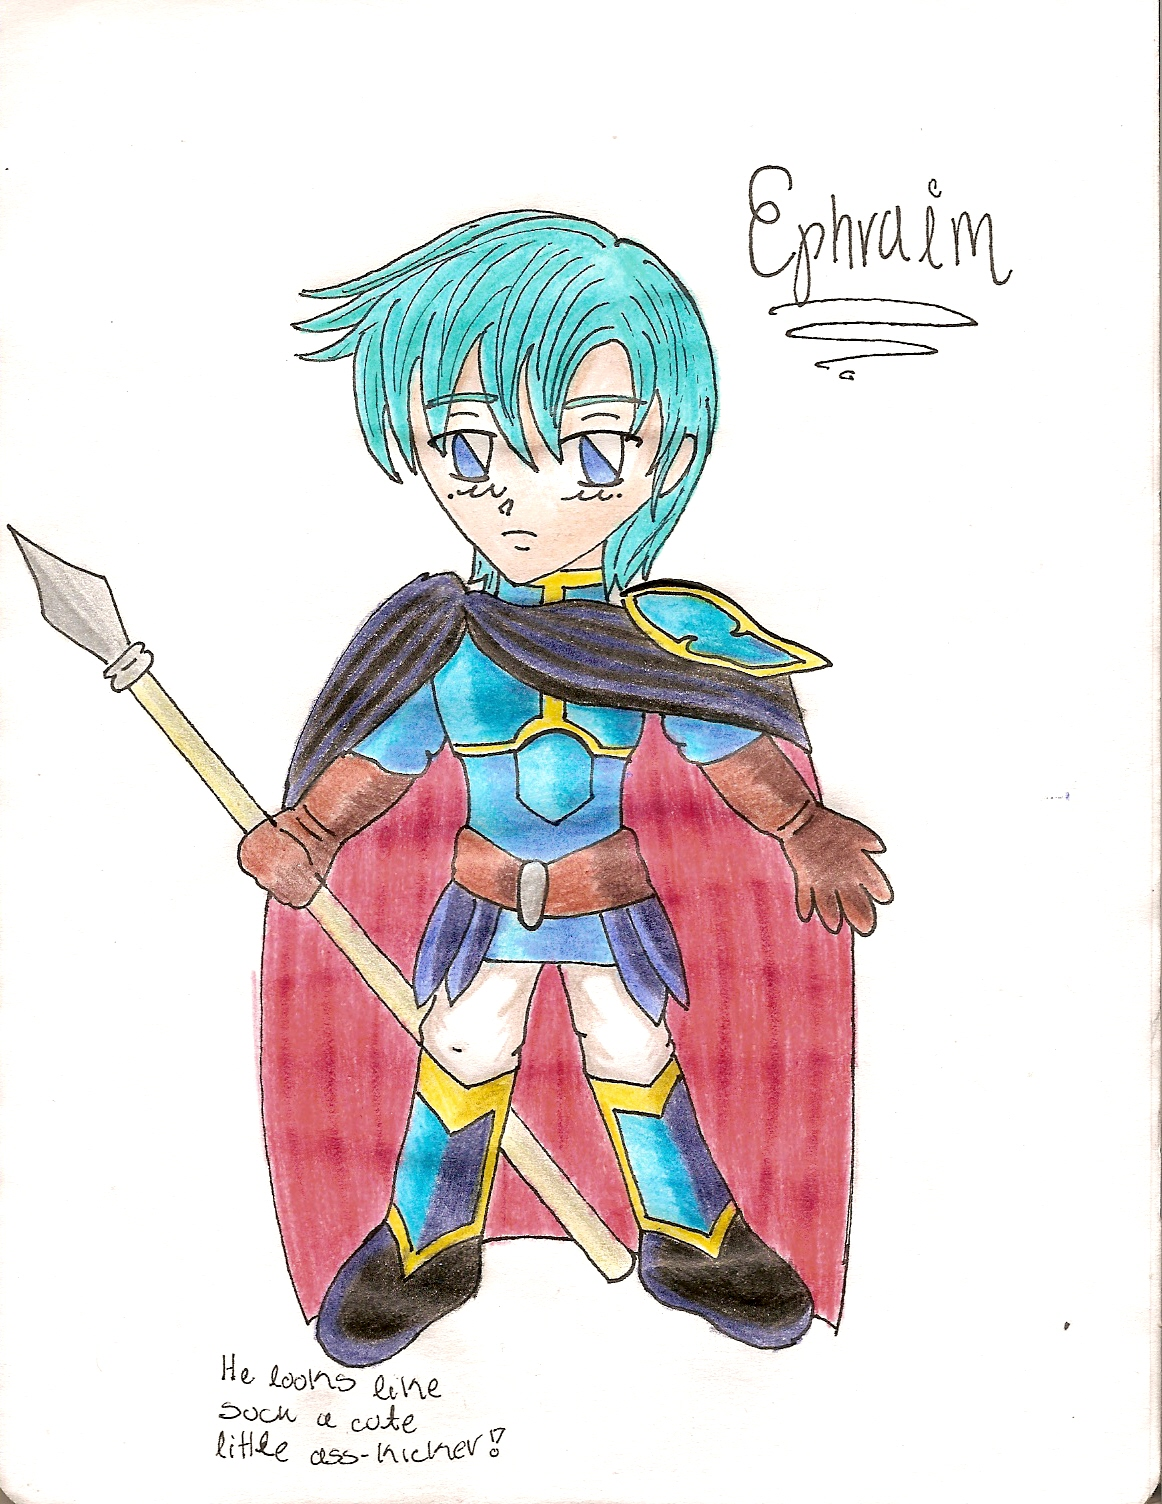 Butt Kicking Chibi Ephraim by kamatari17